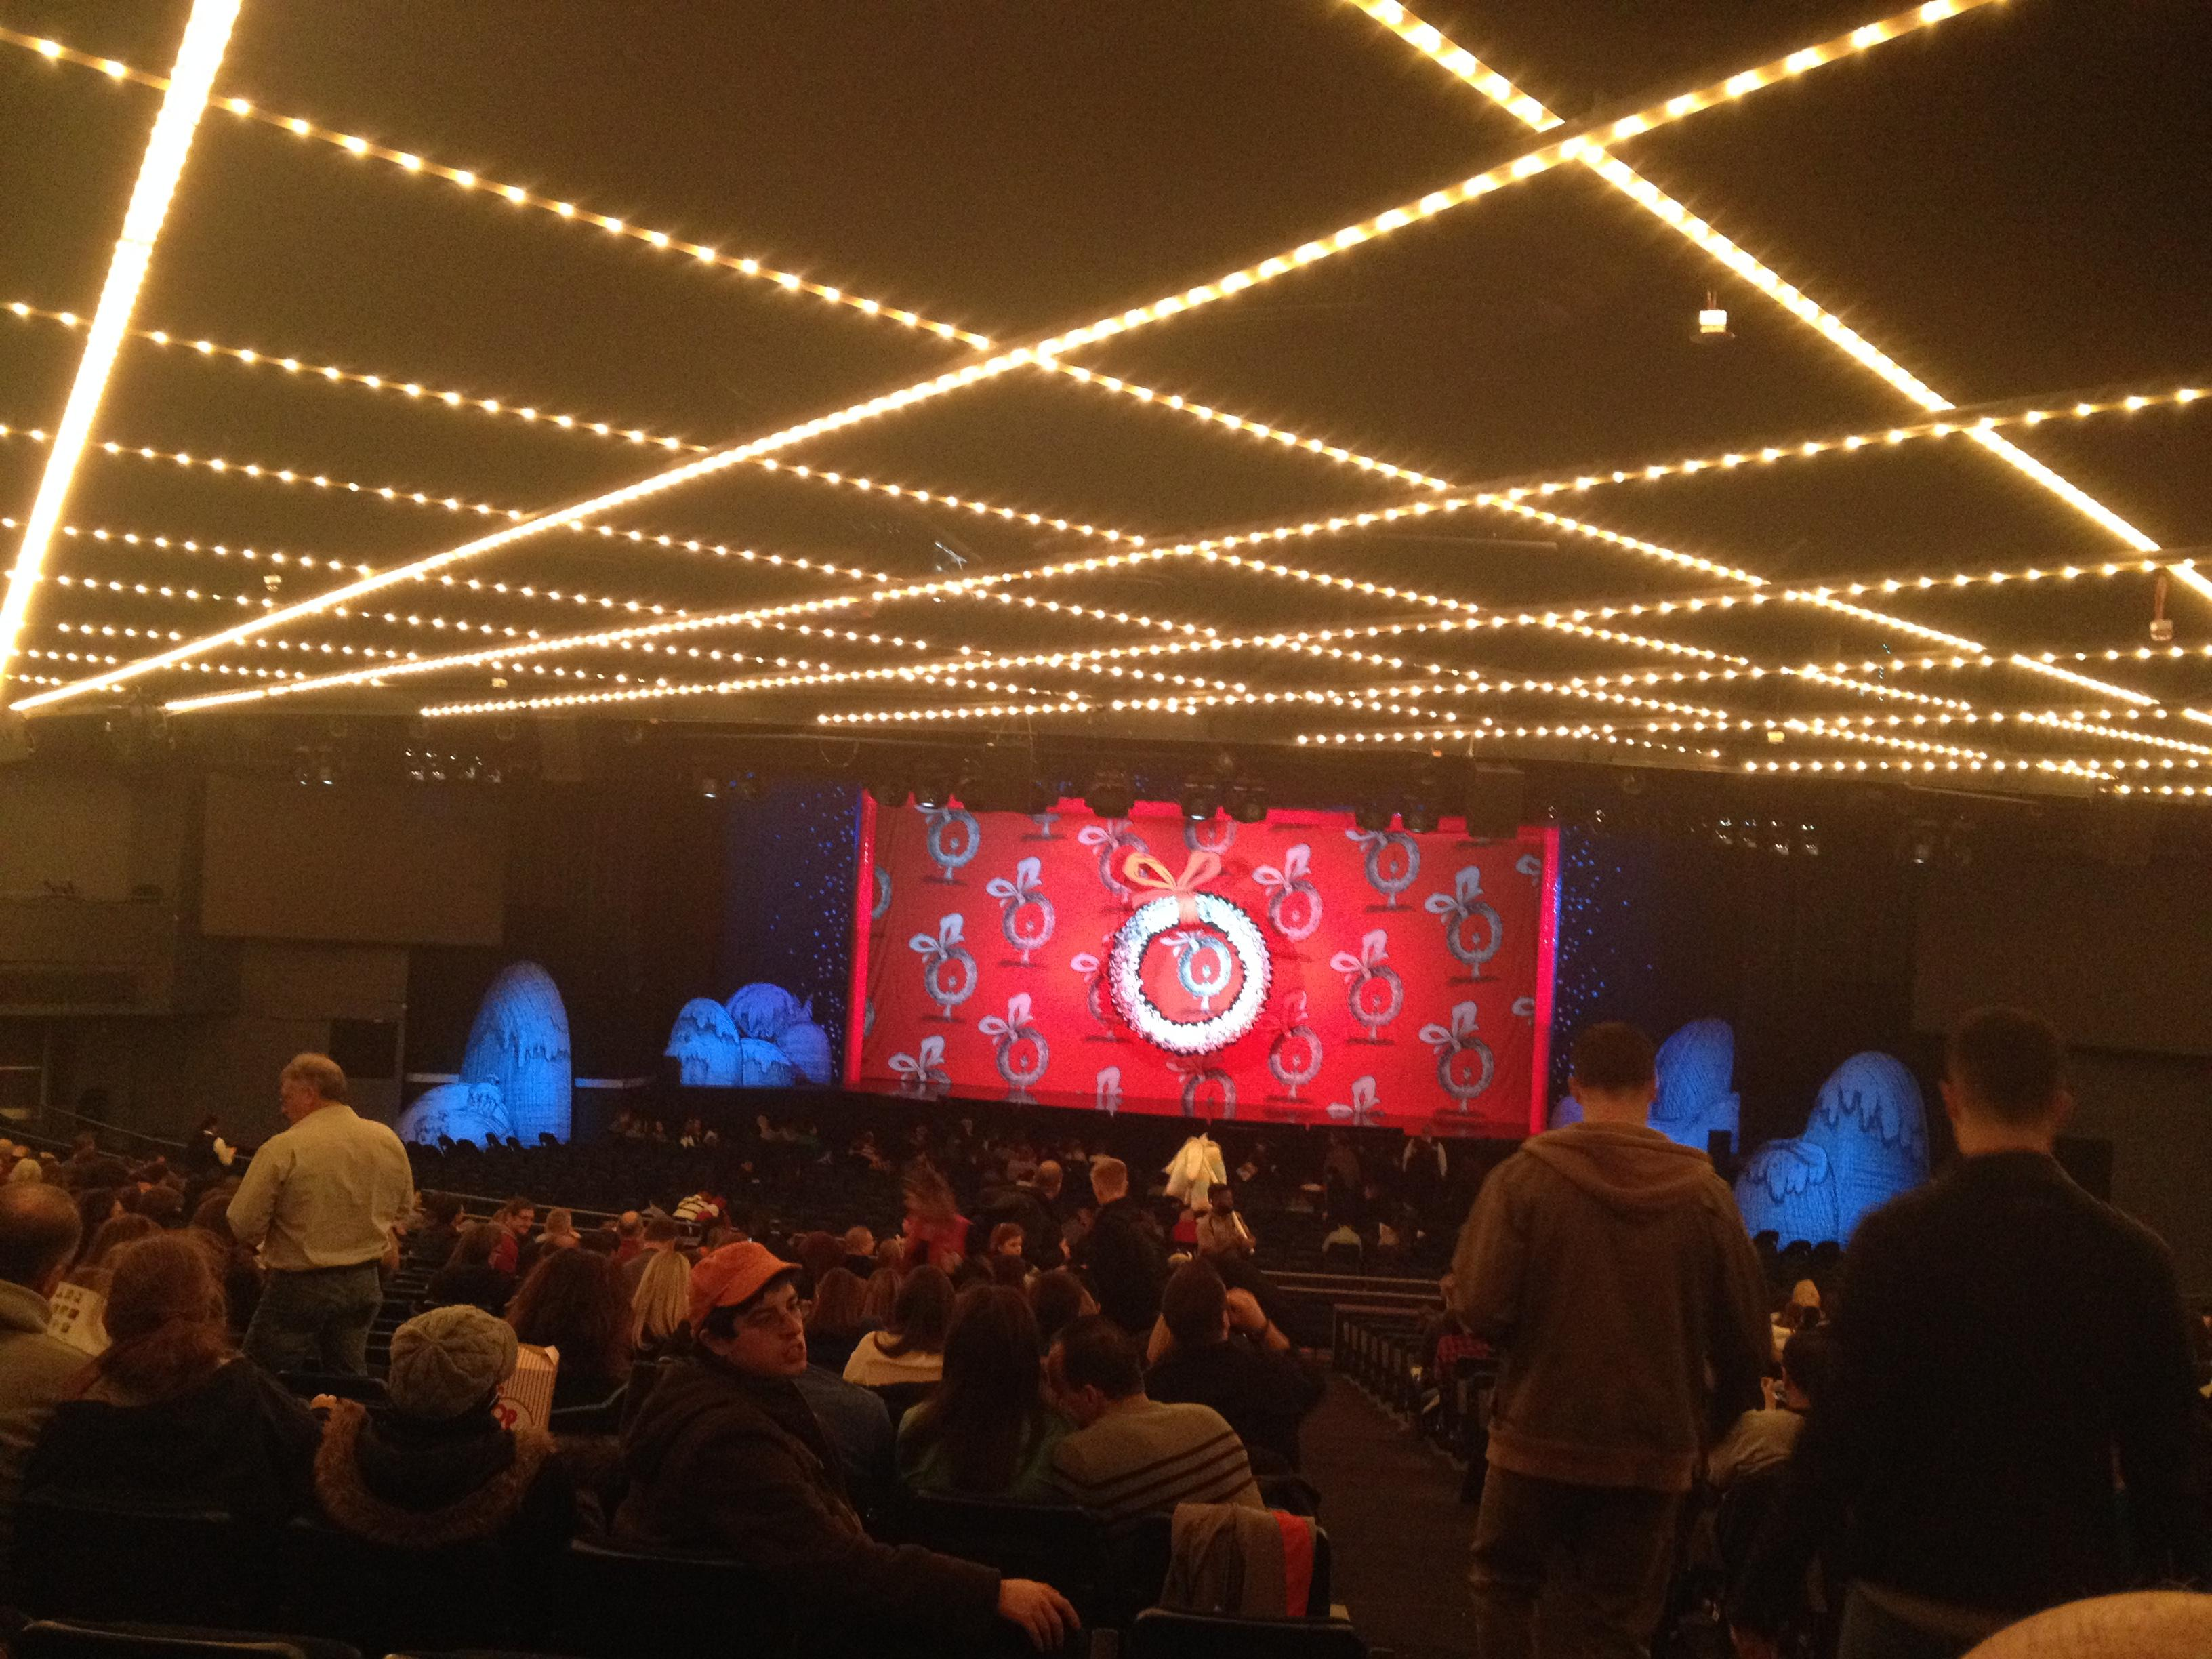 Hulu Theater at Madison Square Garden, section 200, row Z, seat 19 ...